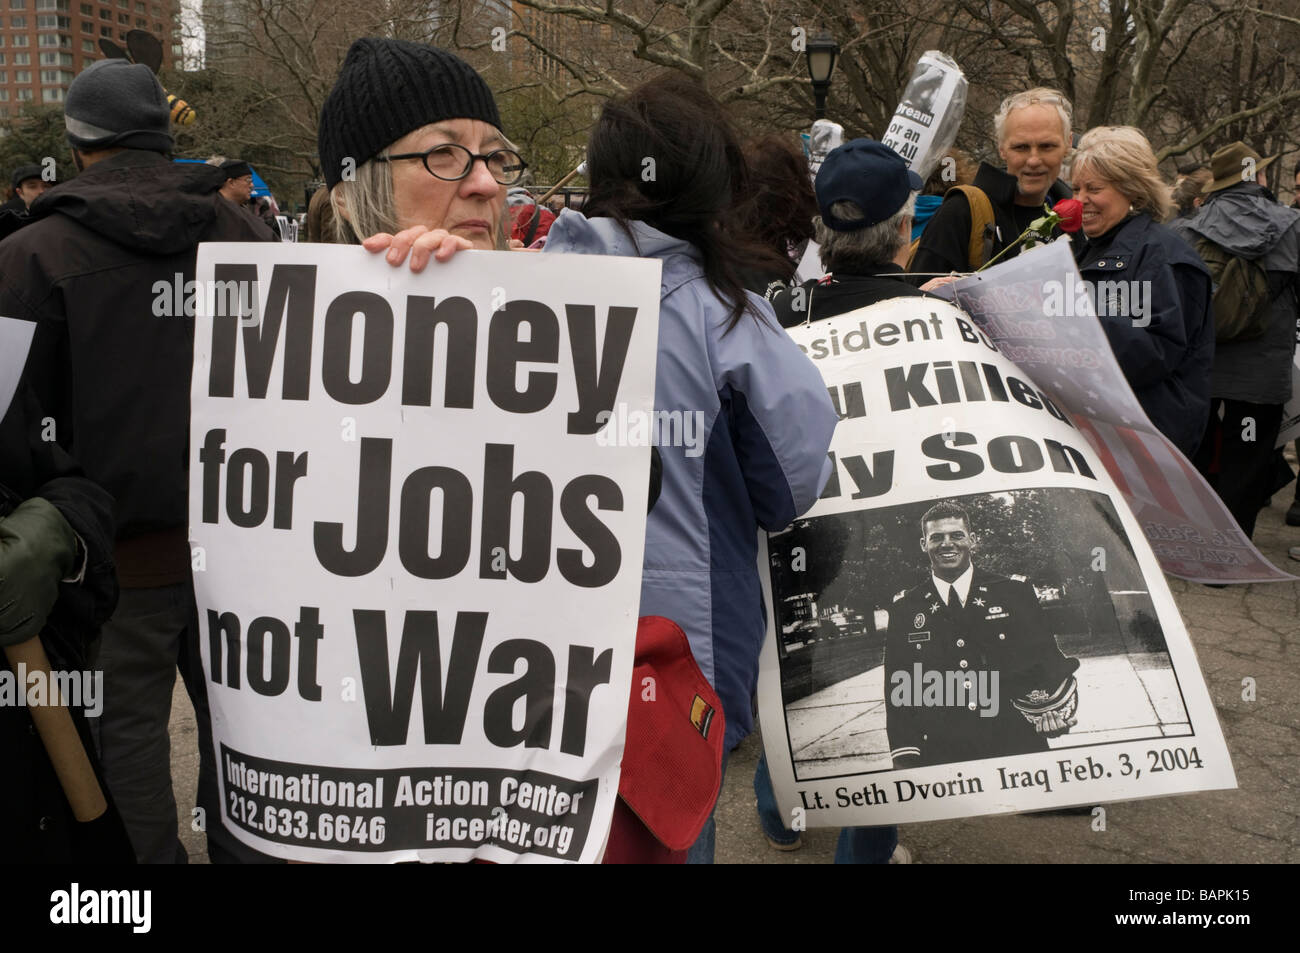 Protestors call on the Obama Administration to direct money for jobs instead of continuing two wars. - Stock Image